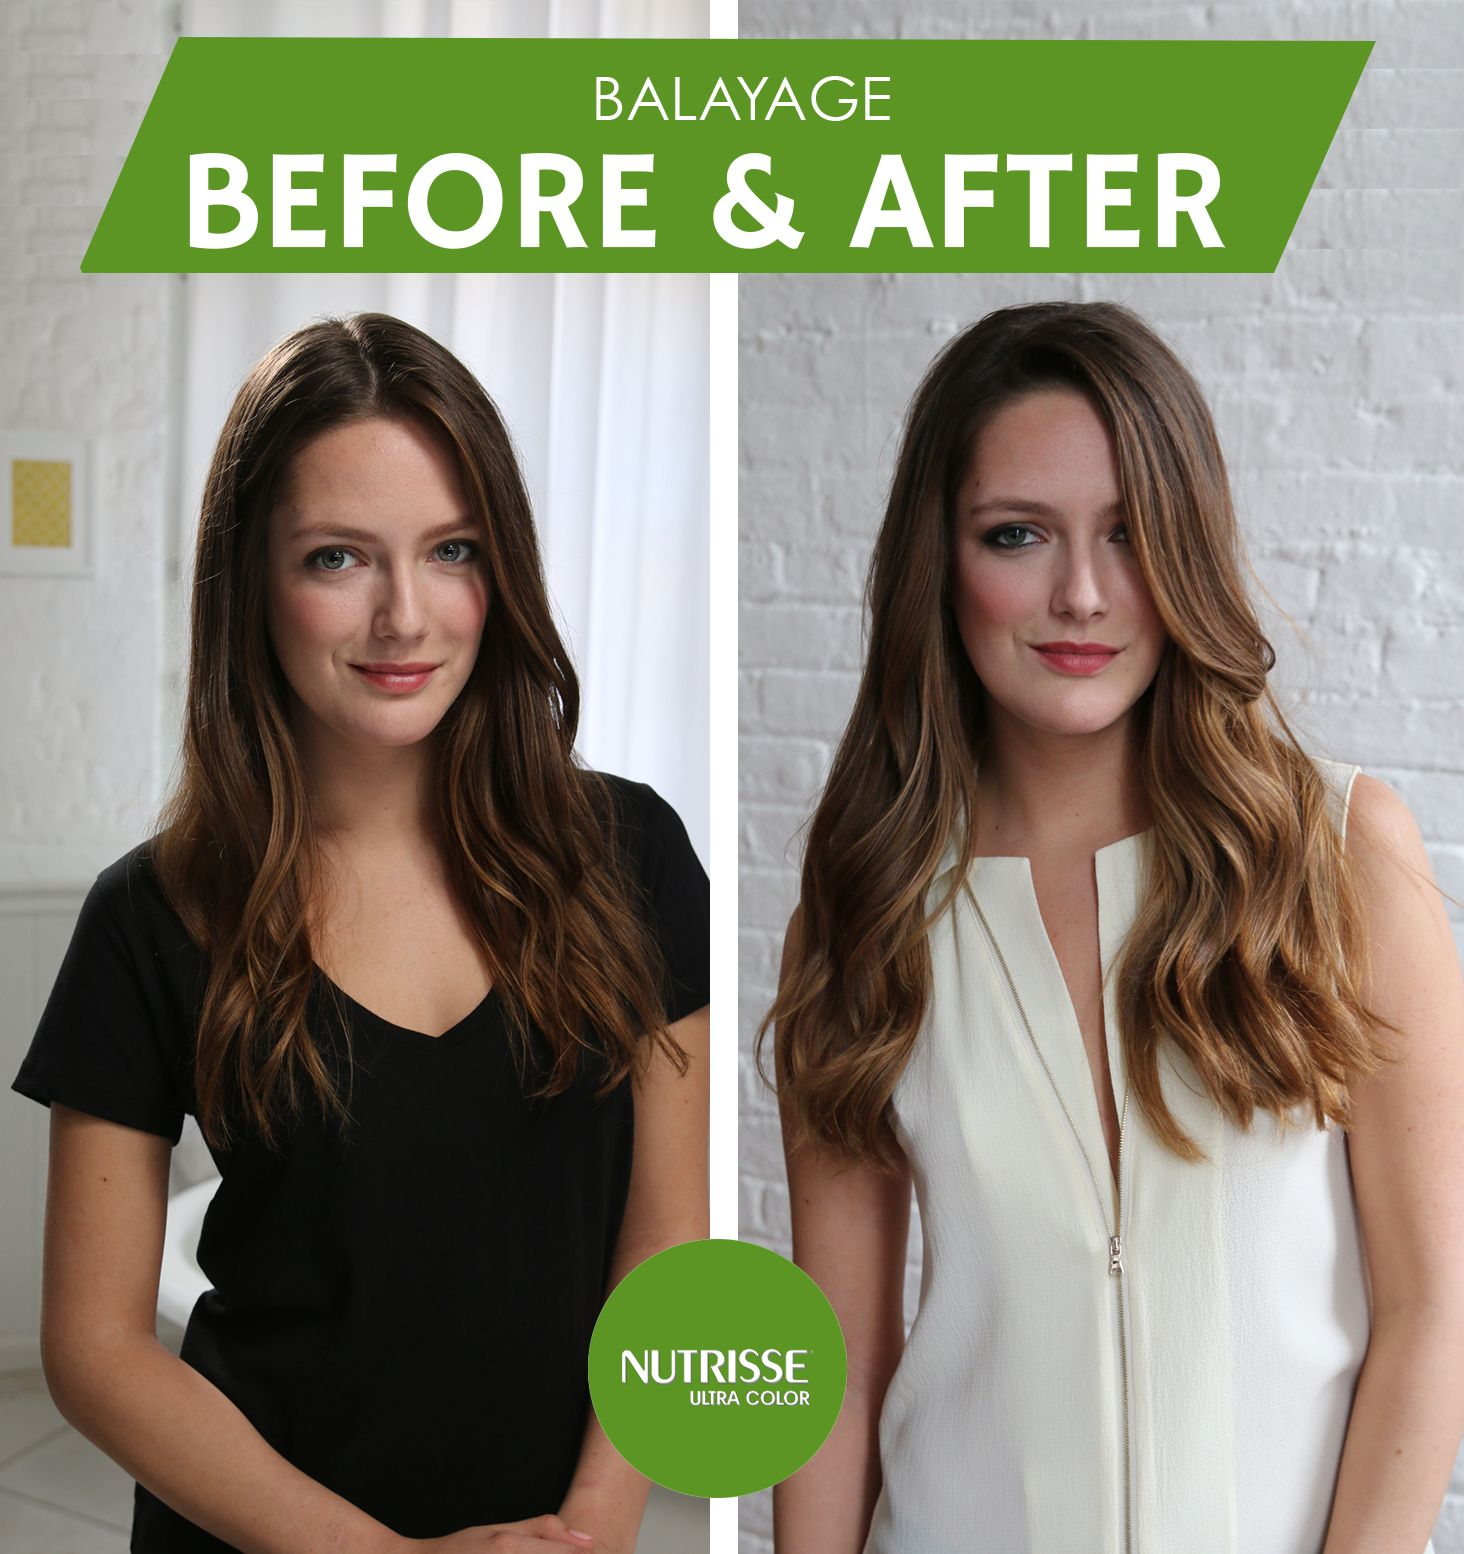 Balayage Is A Hand Painted Hair Color Technique That Mixes Ombre